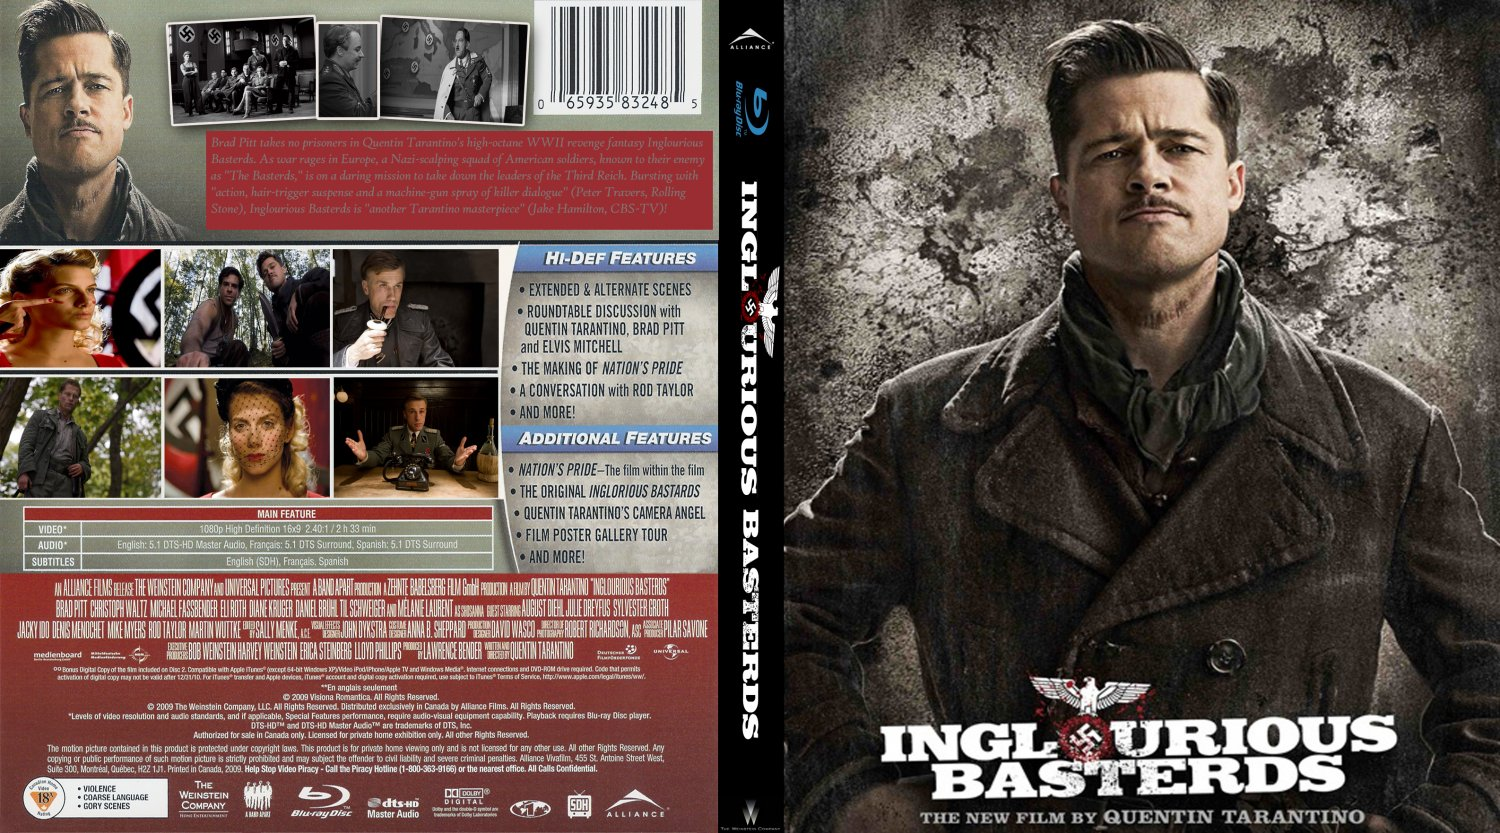 inglorious bastards imdb imdb inglorious bastards images about  covers box sk inglourious basterds imdb dl high quality click here for